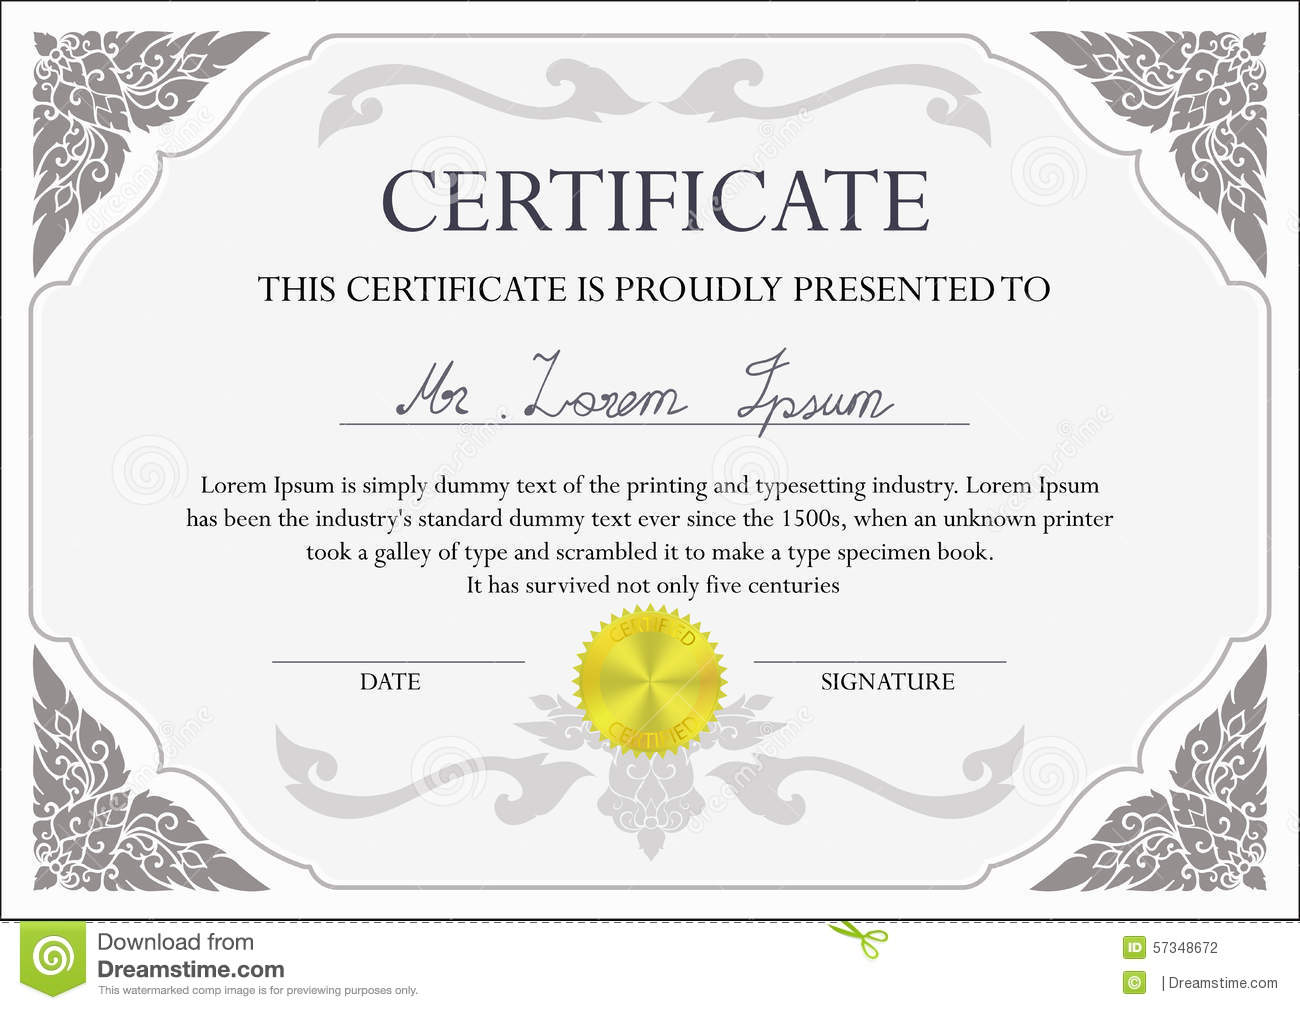 Certificate design template stock vector illustration of ornate certificate design template royalty free vector 1betcityfo Choice Image